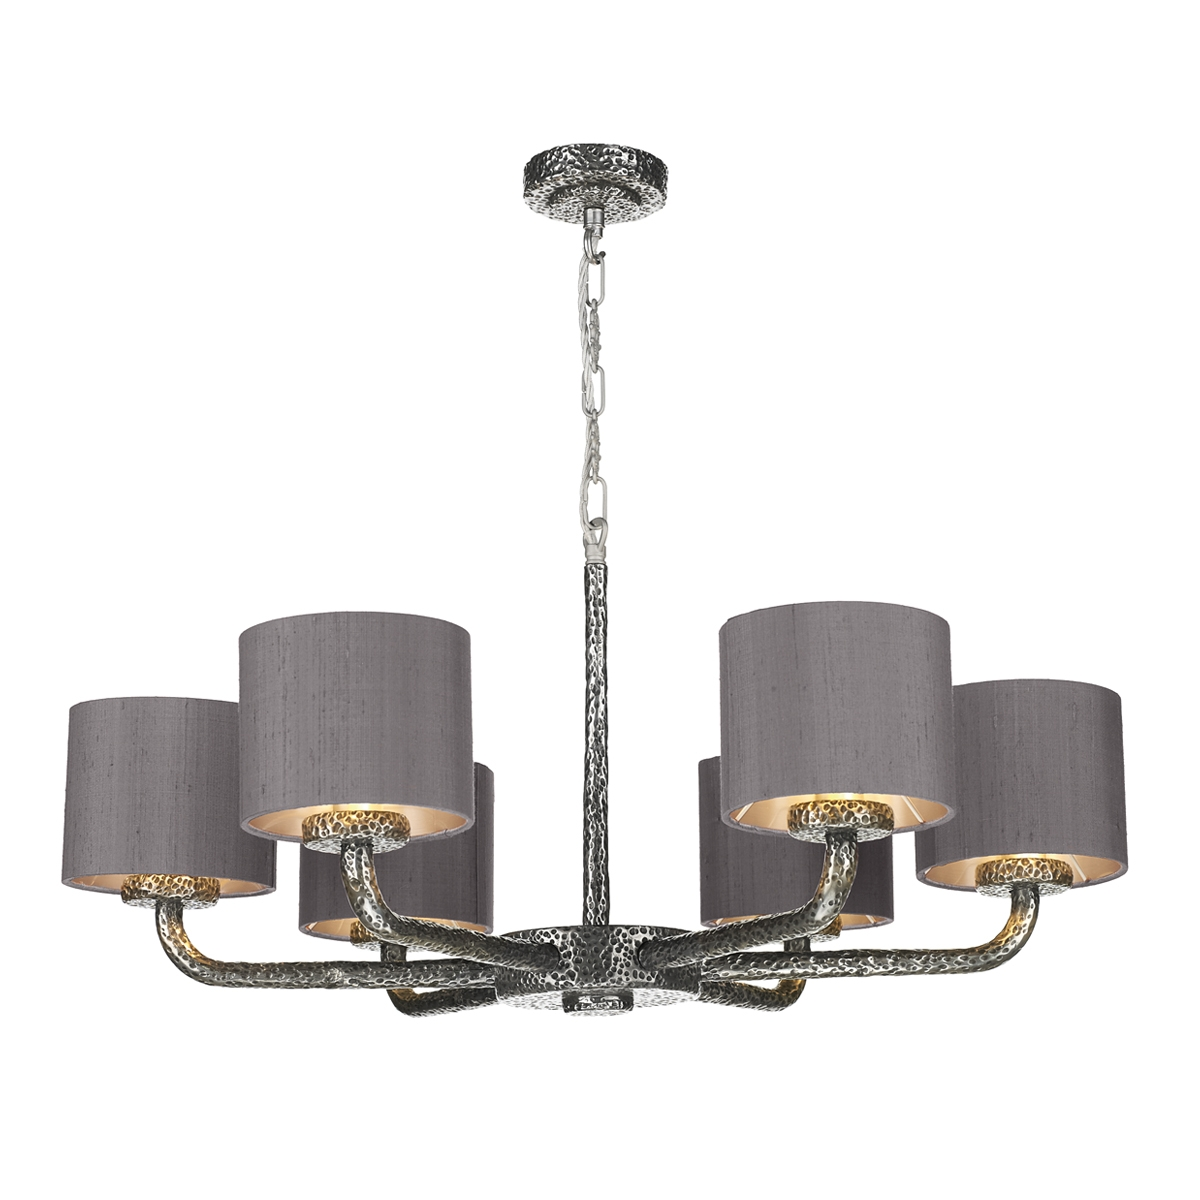 Sloane pewter 6 light pendant with bespoke silk shades arubaitofo Choice Image